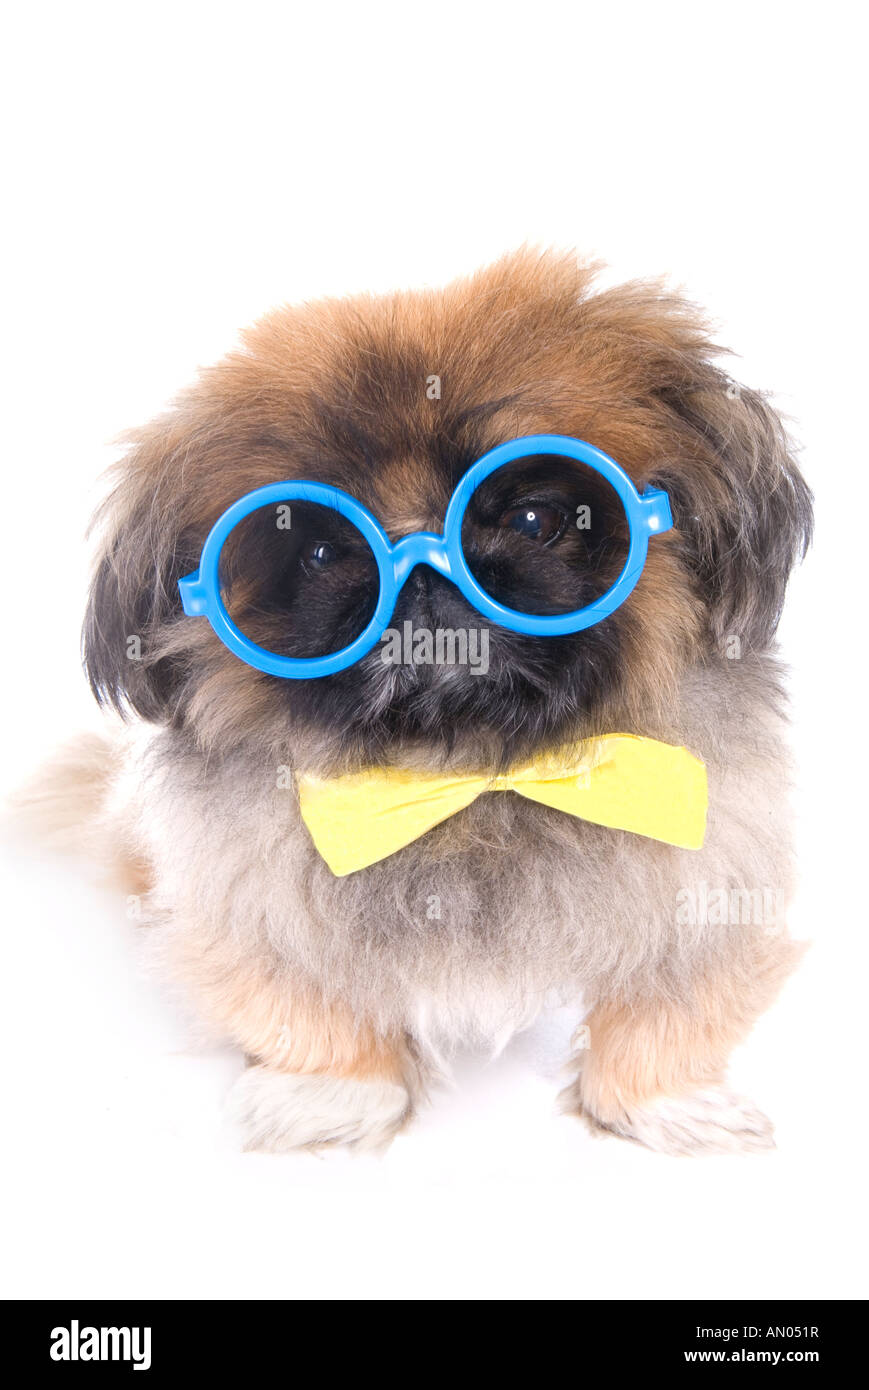 15626e40b532 Brown Pekingese dog dressed as a nerd with big blue glasses and yellow bow  tie isolated